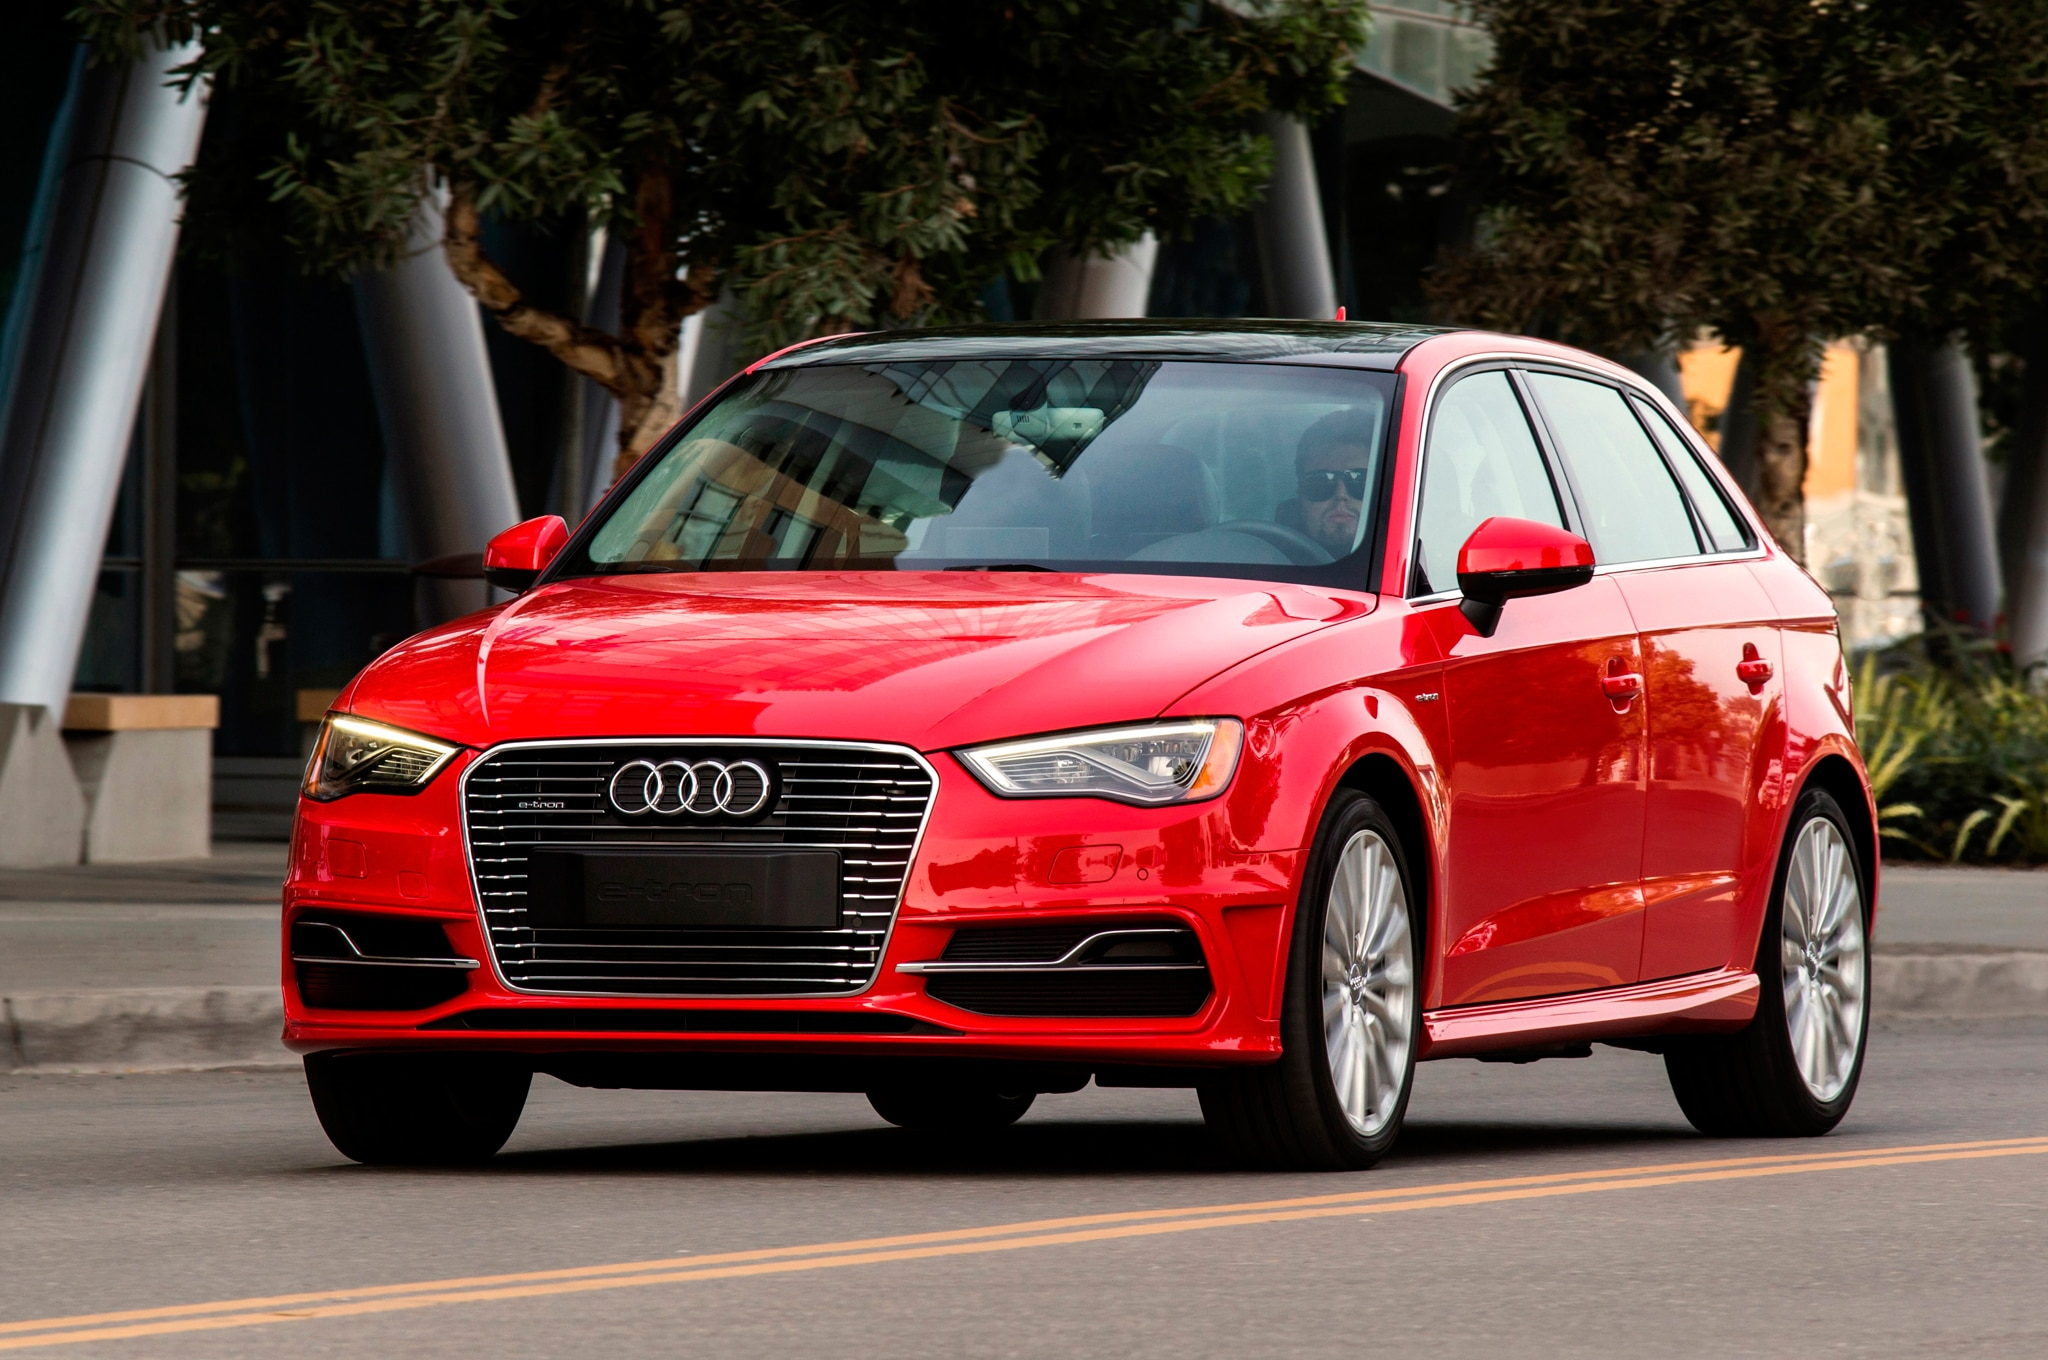 2016 audi a3 sportback e tron review motortrend. Black Bedroom Furniture Sets. Home Design Ideas